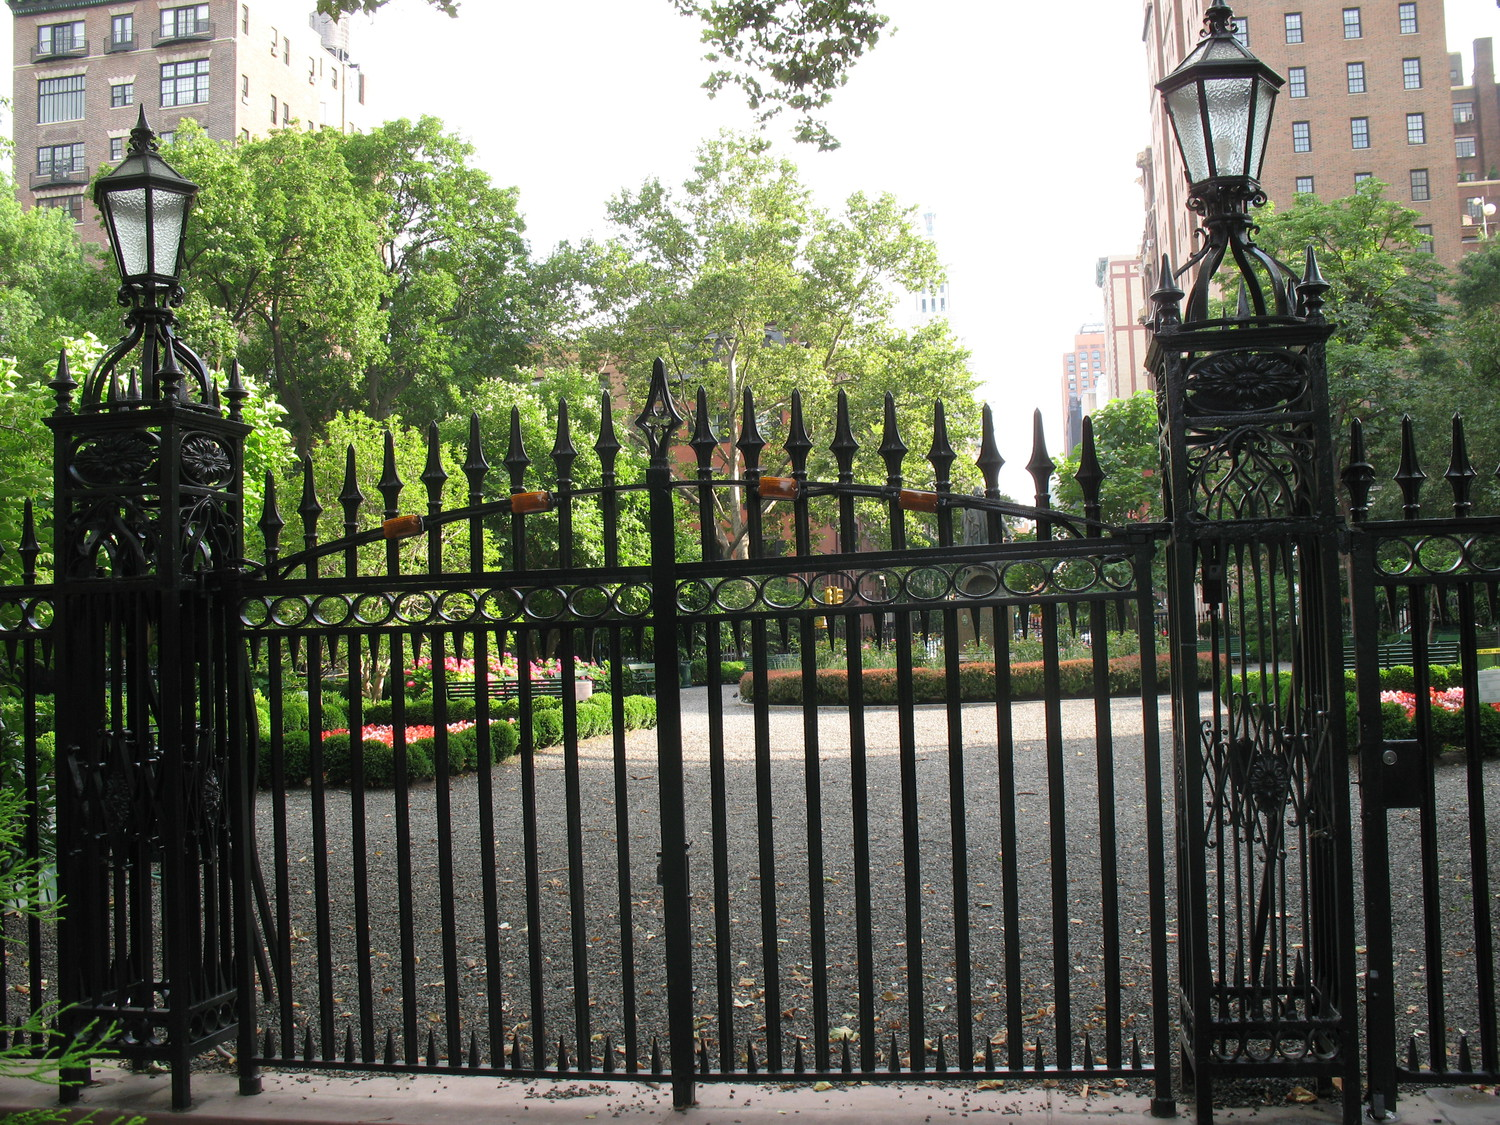 "NYC:  Gramercy Park | Gramercy Park (sometimes misspelled as Grammercy) is a small, fenced-in private park bounded by E 20th St, E 21st St, Park Avenue S, and 3rd Avenue, in Gramerce. Normally accessible only to residents of certain townhouses in the area who have keys to the park, nearby residents may buy visiting priviliges and it is open to the public on Christmas Day, Yom Kippur and Gramercy Day (which chanes early, but is often the first Saturday in May). It is the only remaining private park in Manhattan.  The name ""Gramercy"" is almost certainly a corruption of the Dutch word ""krom mesje,"" or ""little crooked knife,"" the name of a small brook that flowed along what is now 21st Street. The area was originally a swamp when Samuel B. Ruggles bought it from James Duane and turned it into part of Gramercy Farm. In 1831 Ruggles donated the property to the city on condition that no commercial enterprise be permitted on the facing streets or in the park proper. To this day, the park contains no amusements, swing sets, snack shops or any other intrusions on its rusticity.  The center of the park contains a statue of one of the area's most famous residents, Edwin Booth. Booth was one of the great Shakespearean actors of 19th century America, as well as the brother of John Wilkes Booth, the assassin of Abraham Lincoln."